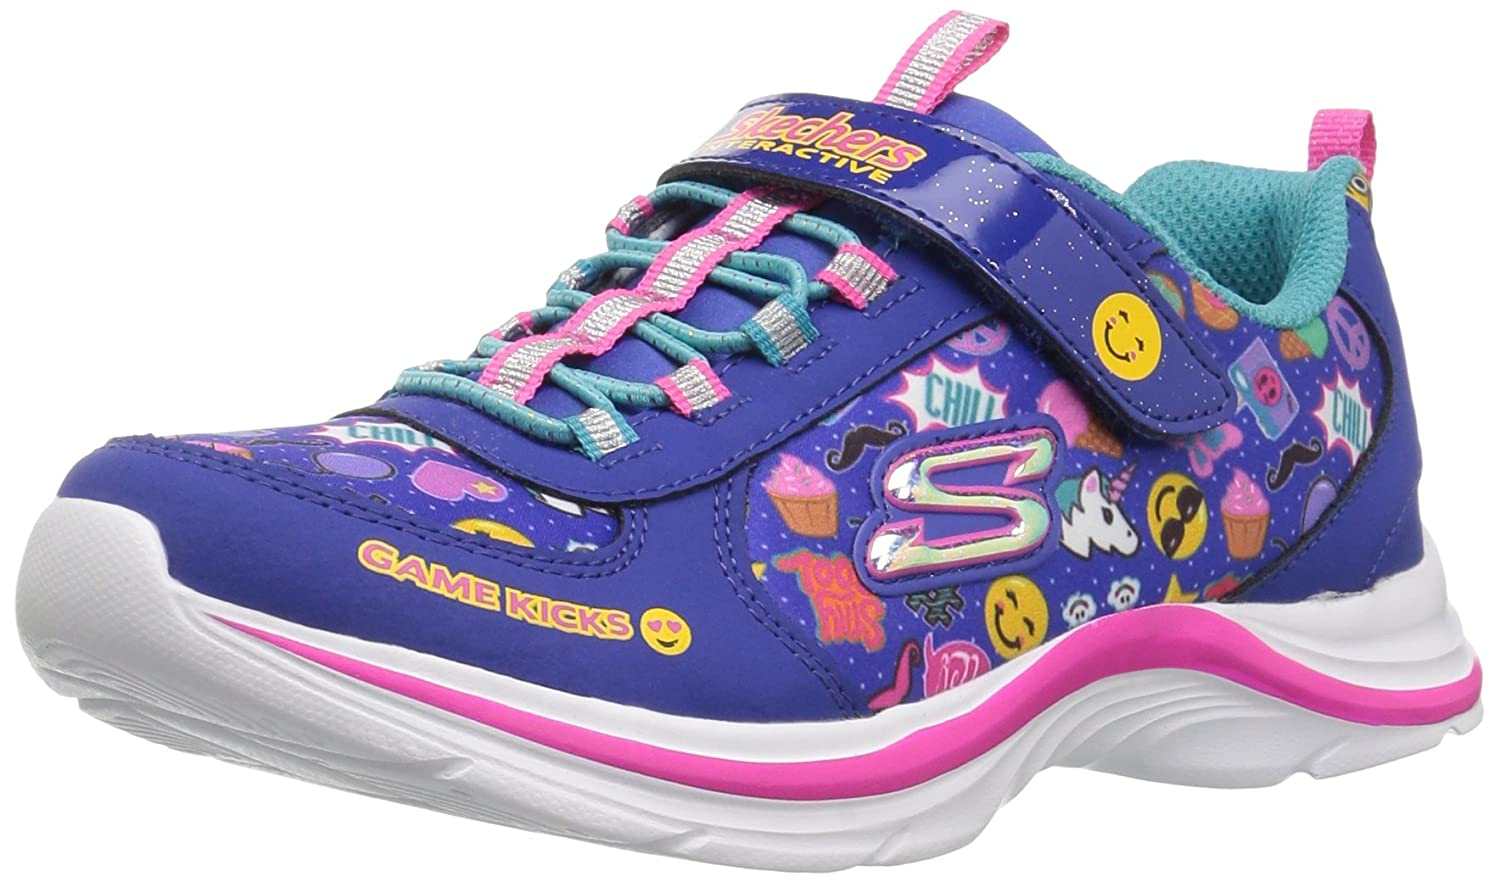 Skechers Girl's, Game Kicks Swift Kicks Emoti Match Slip on Light up Sneakers Skechers Girl' s